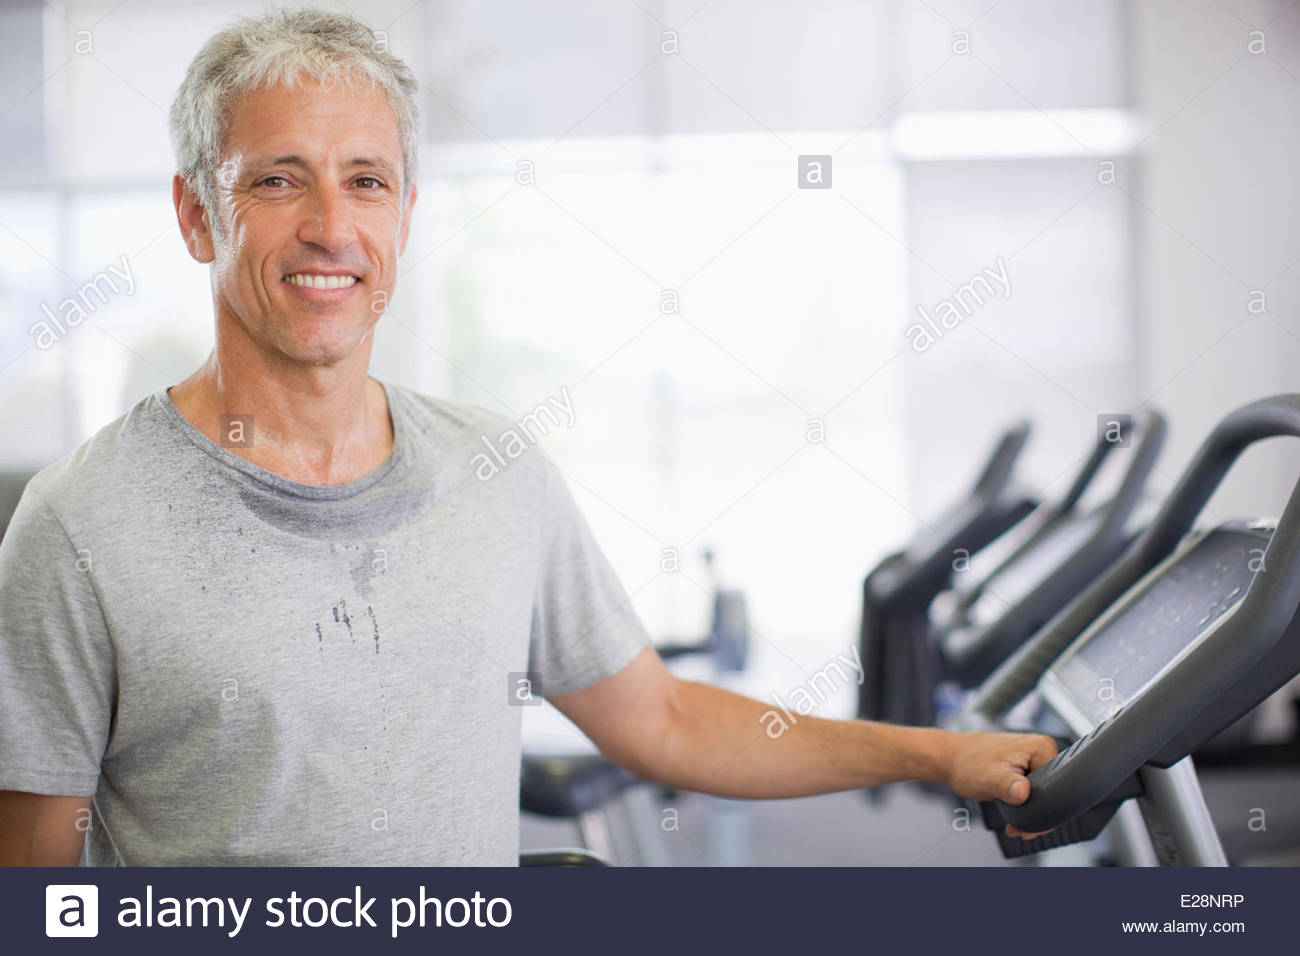 Portrait of smiling man on treadmill in gymnasium Stock Photo